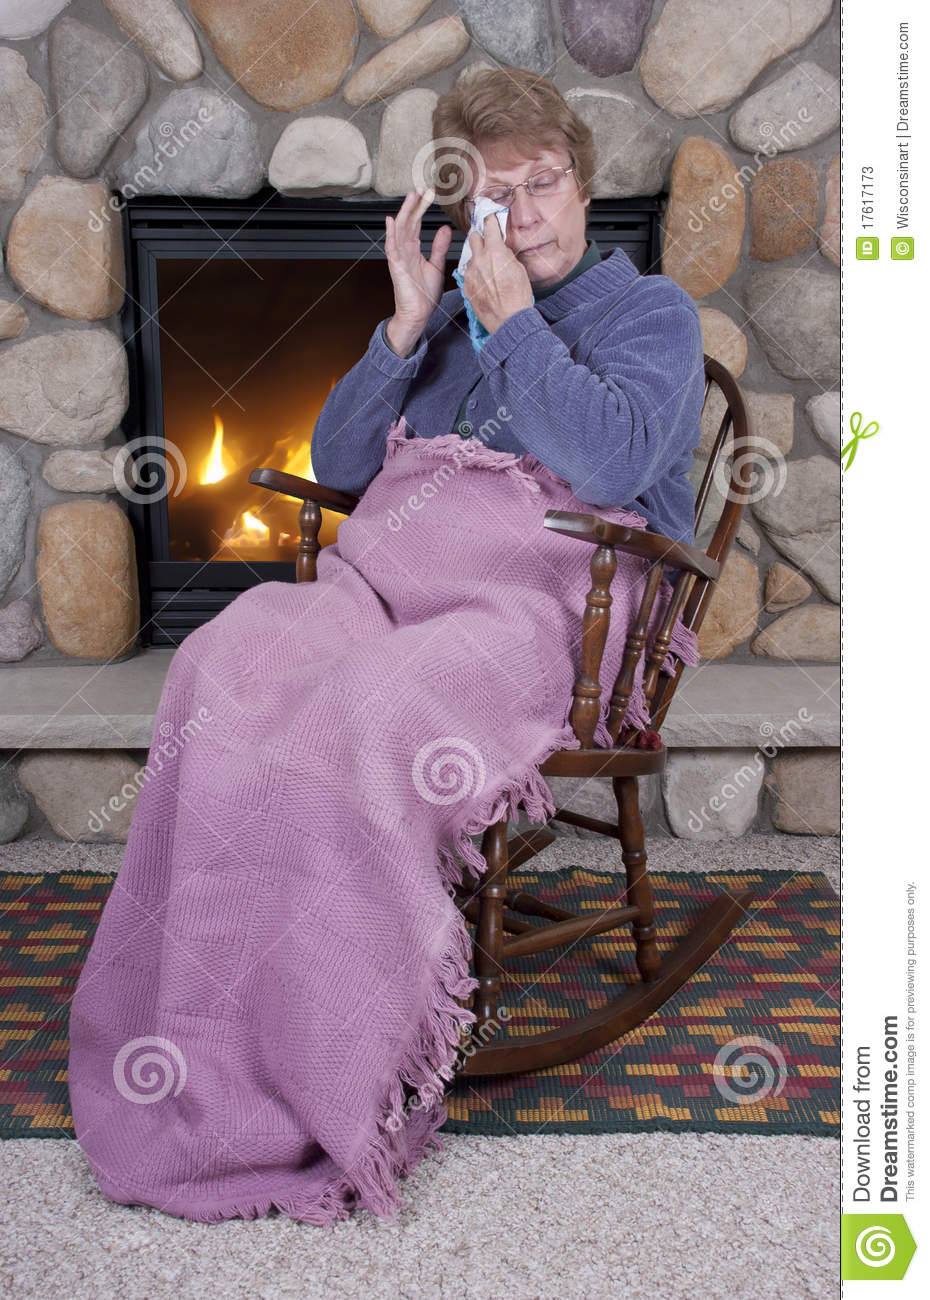 on sale b09dc 1618f Senior Woman Sad Cry Rocking Chair Fireplace Stock Image ...